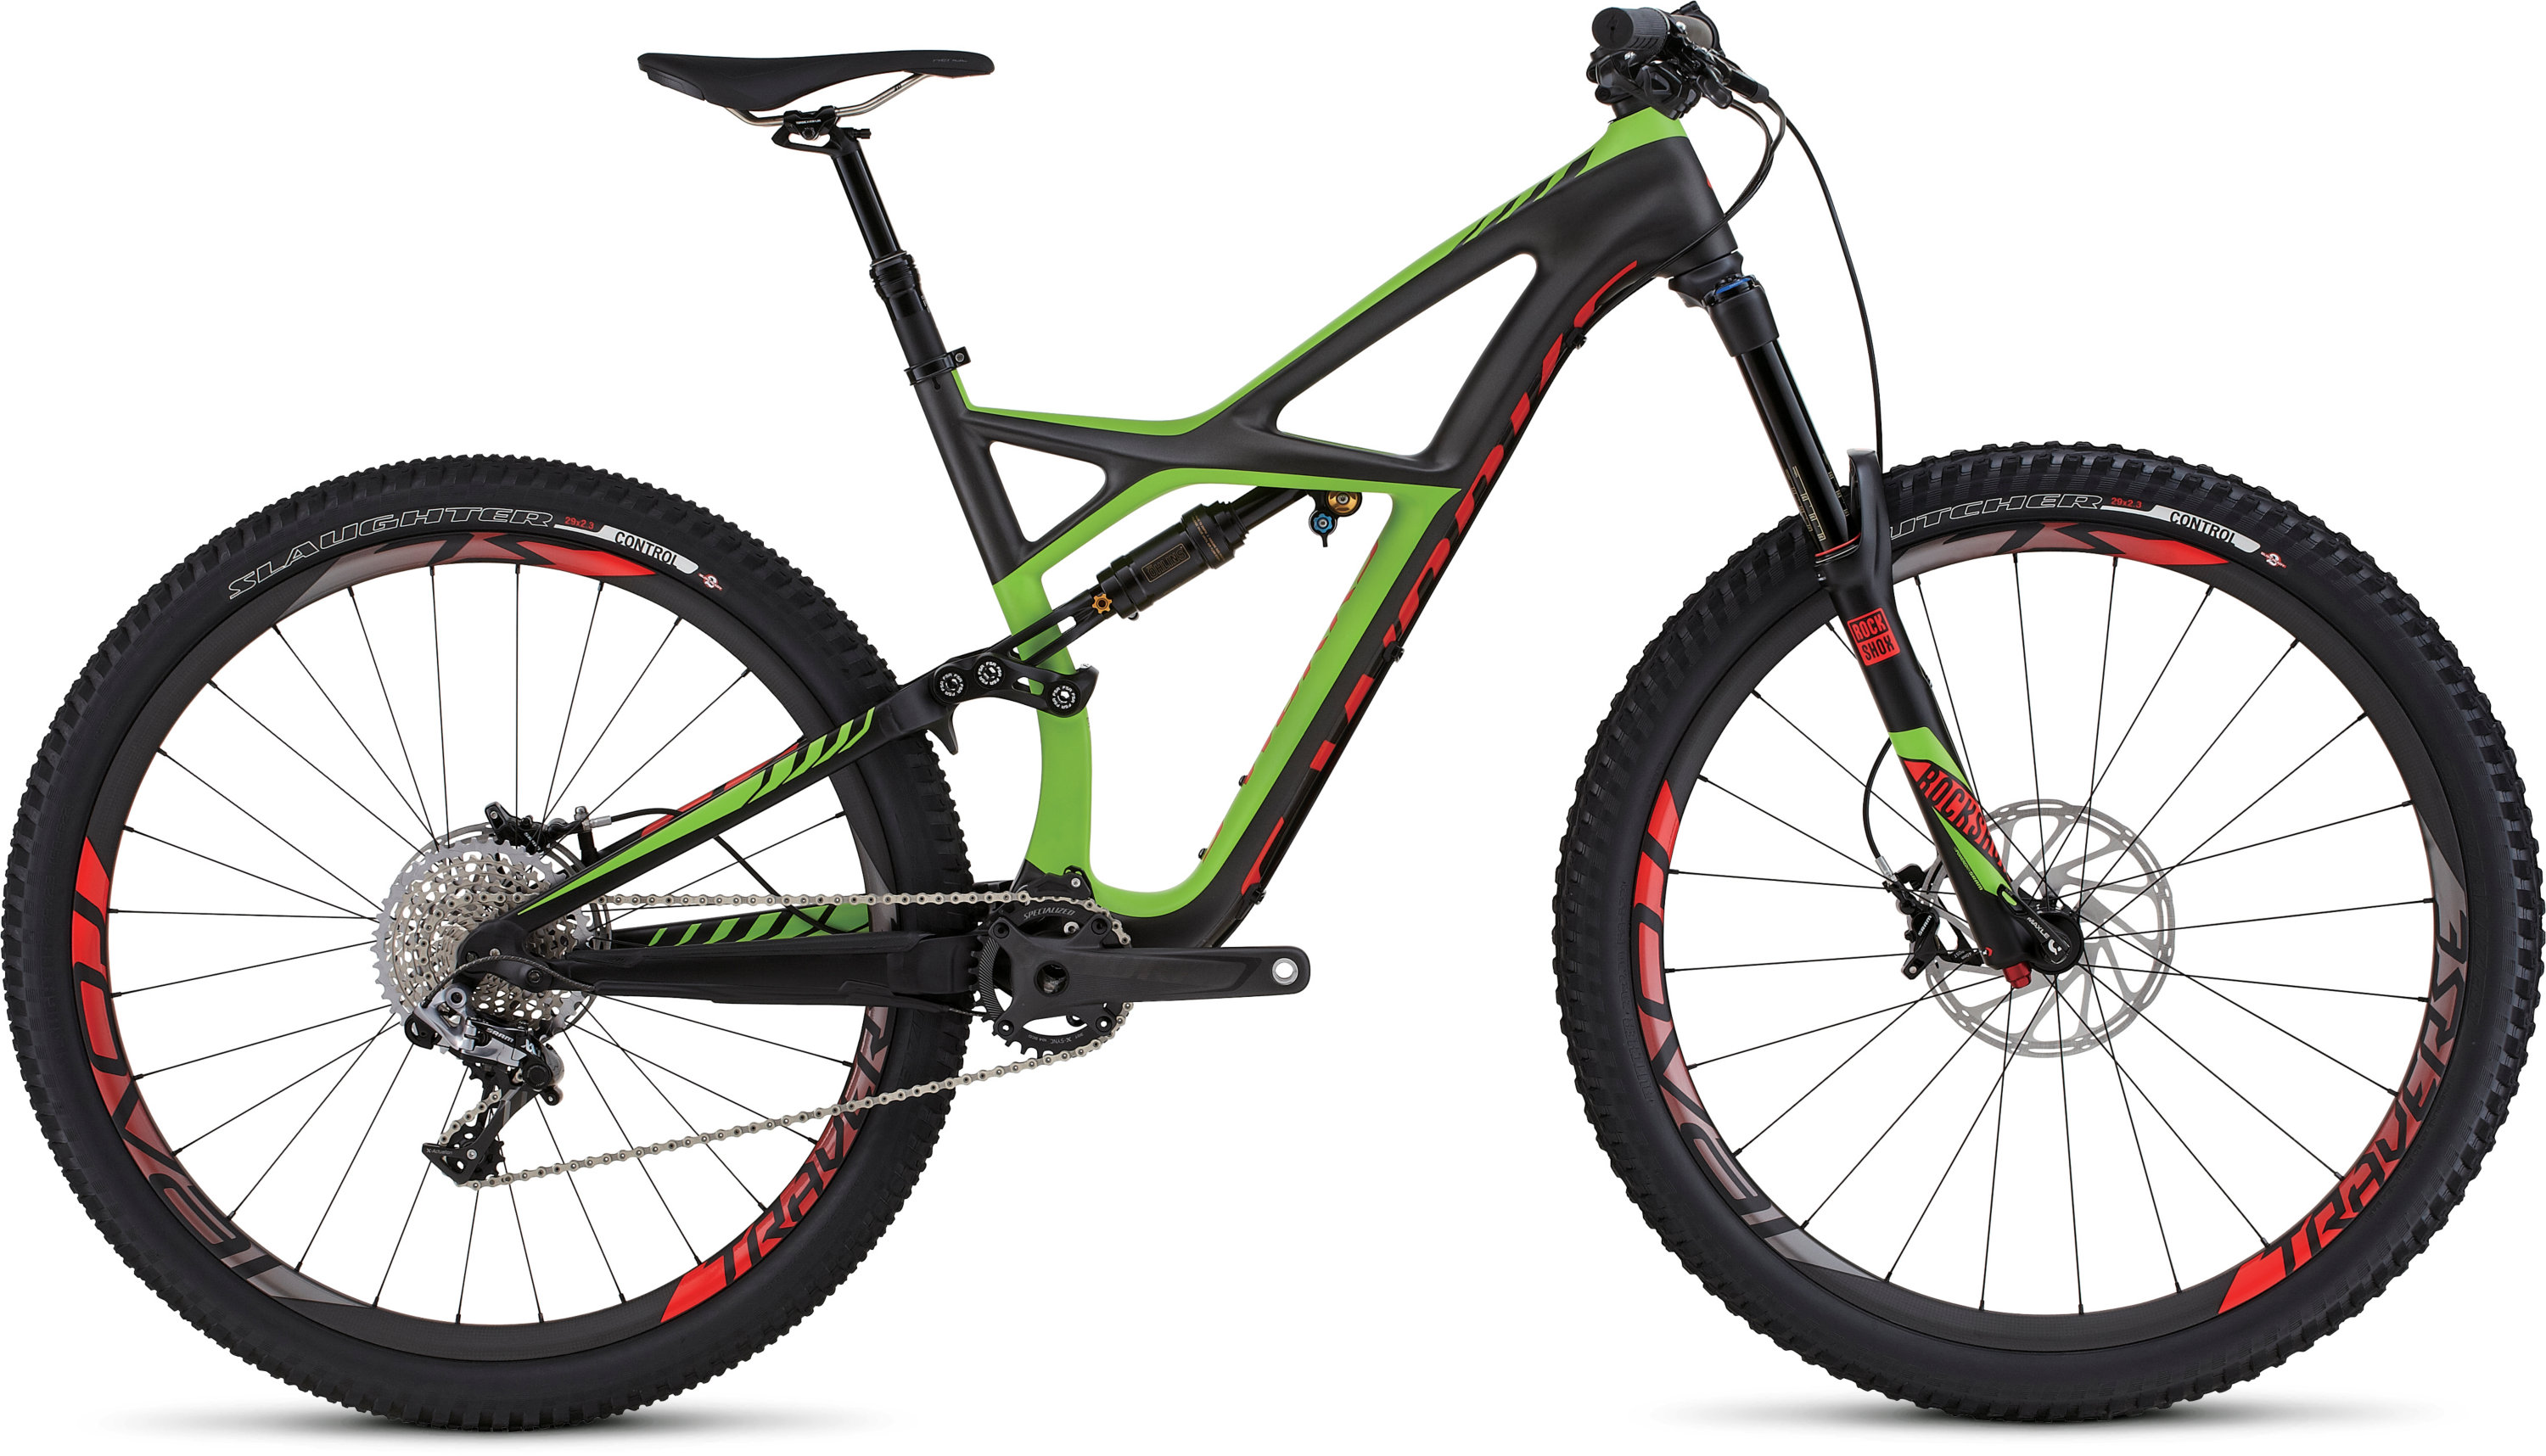 SPECIALIZED SW ENDURO FSR CARBON 29 CHARTNTCARB/MONGRN/RKTRED M - schneider-sports